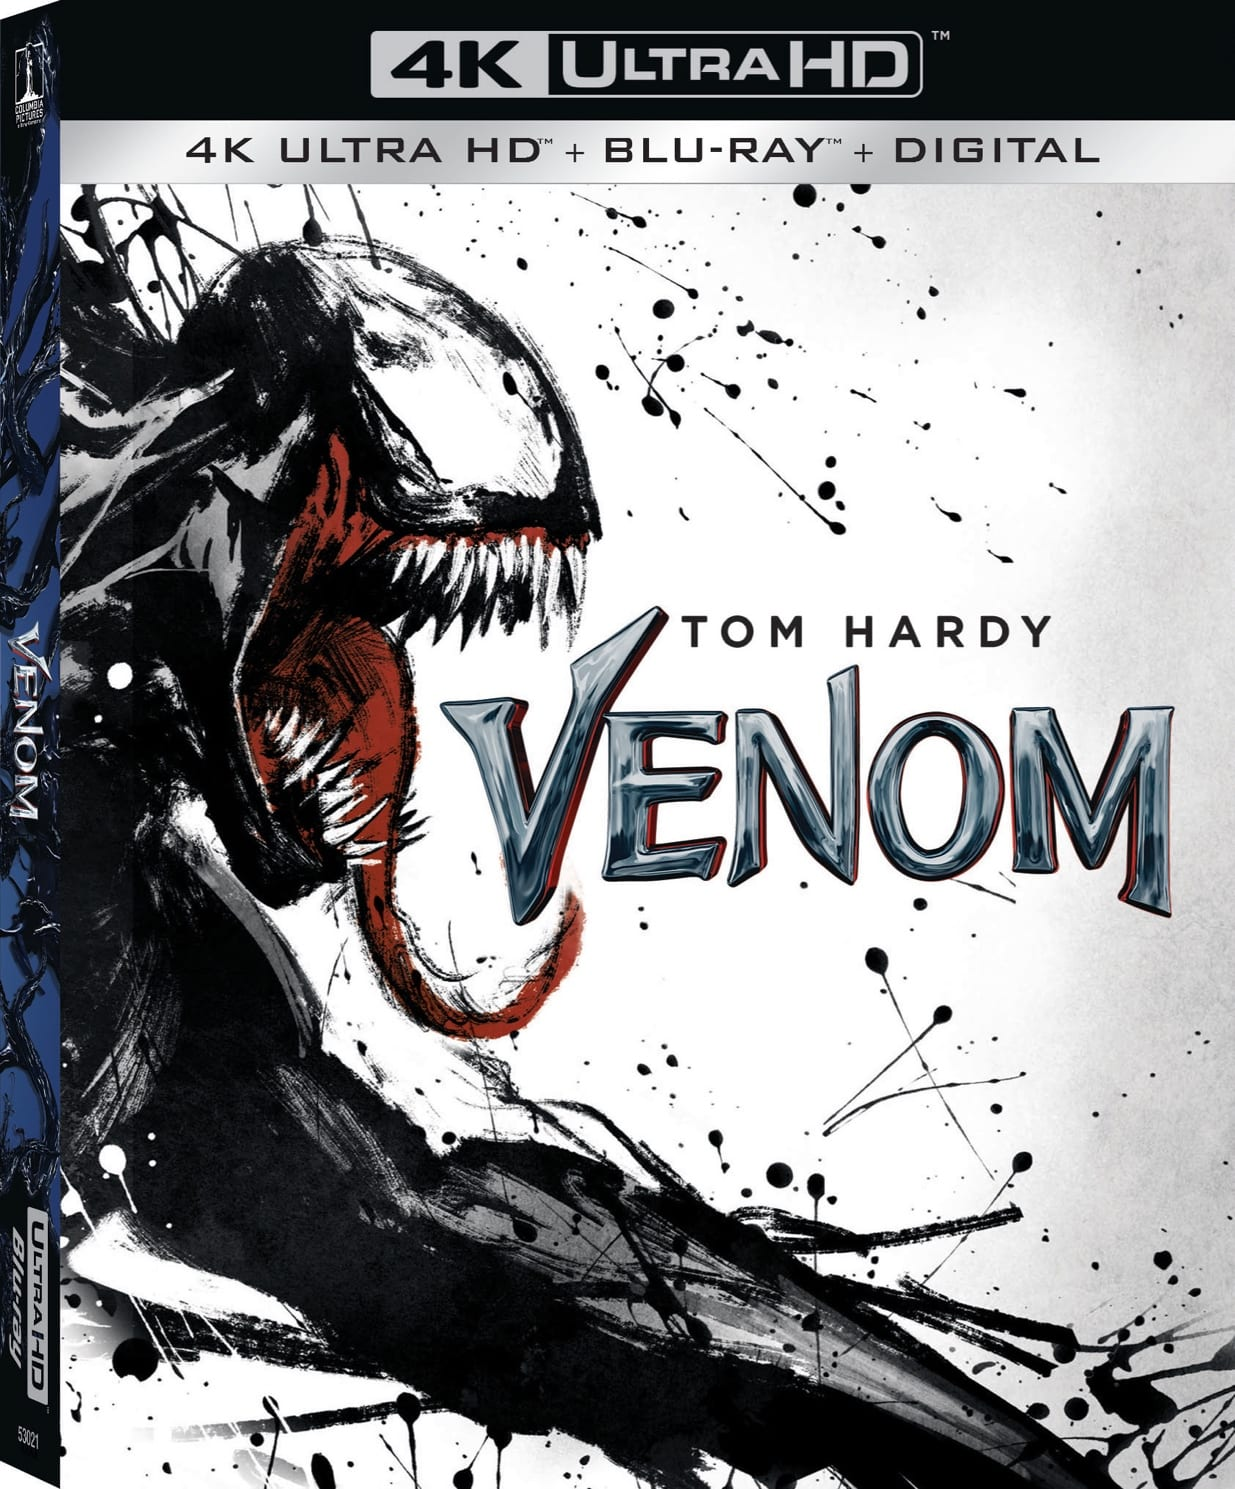 Venom 4k Ultra Hd Blu Ray And Dvd Details And Special Features Announced